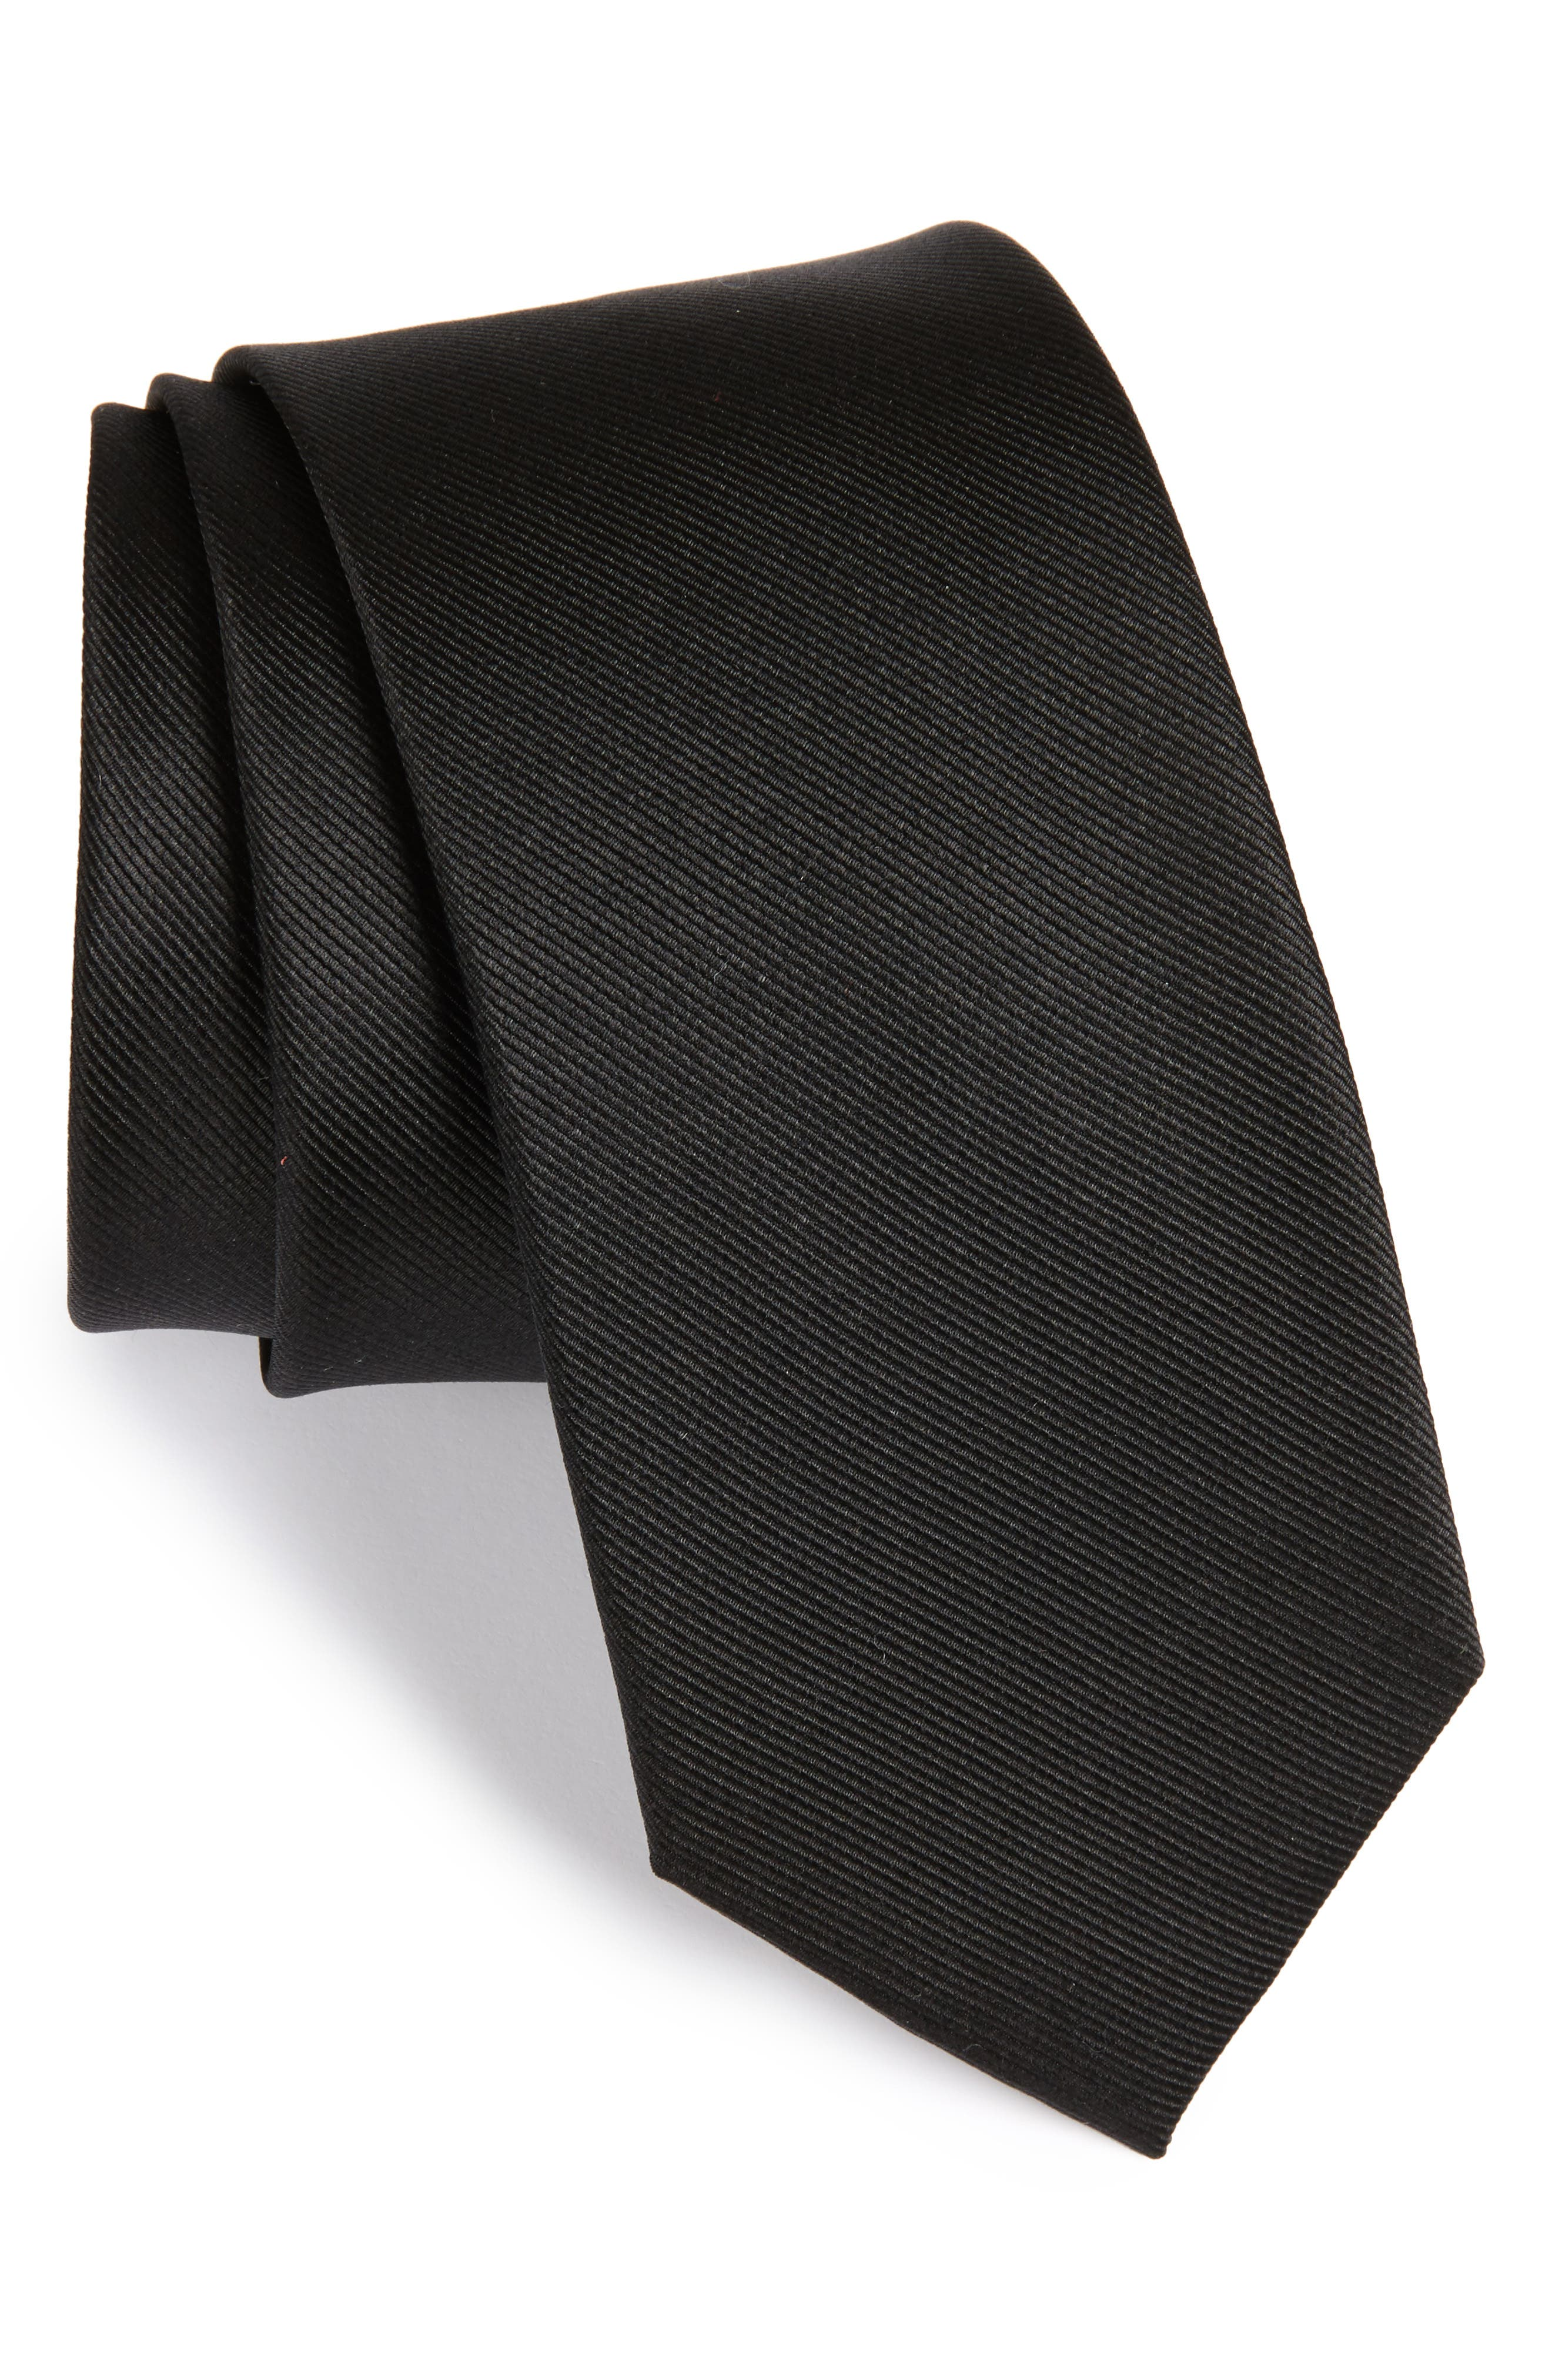 The Tie Bar Grosgrain Silk Tie